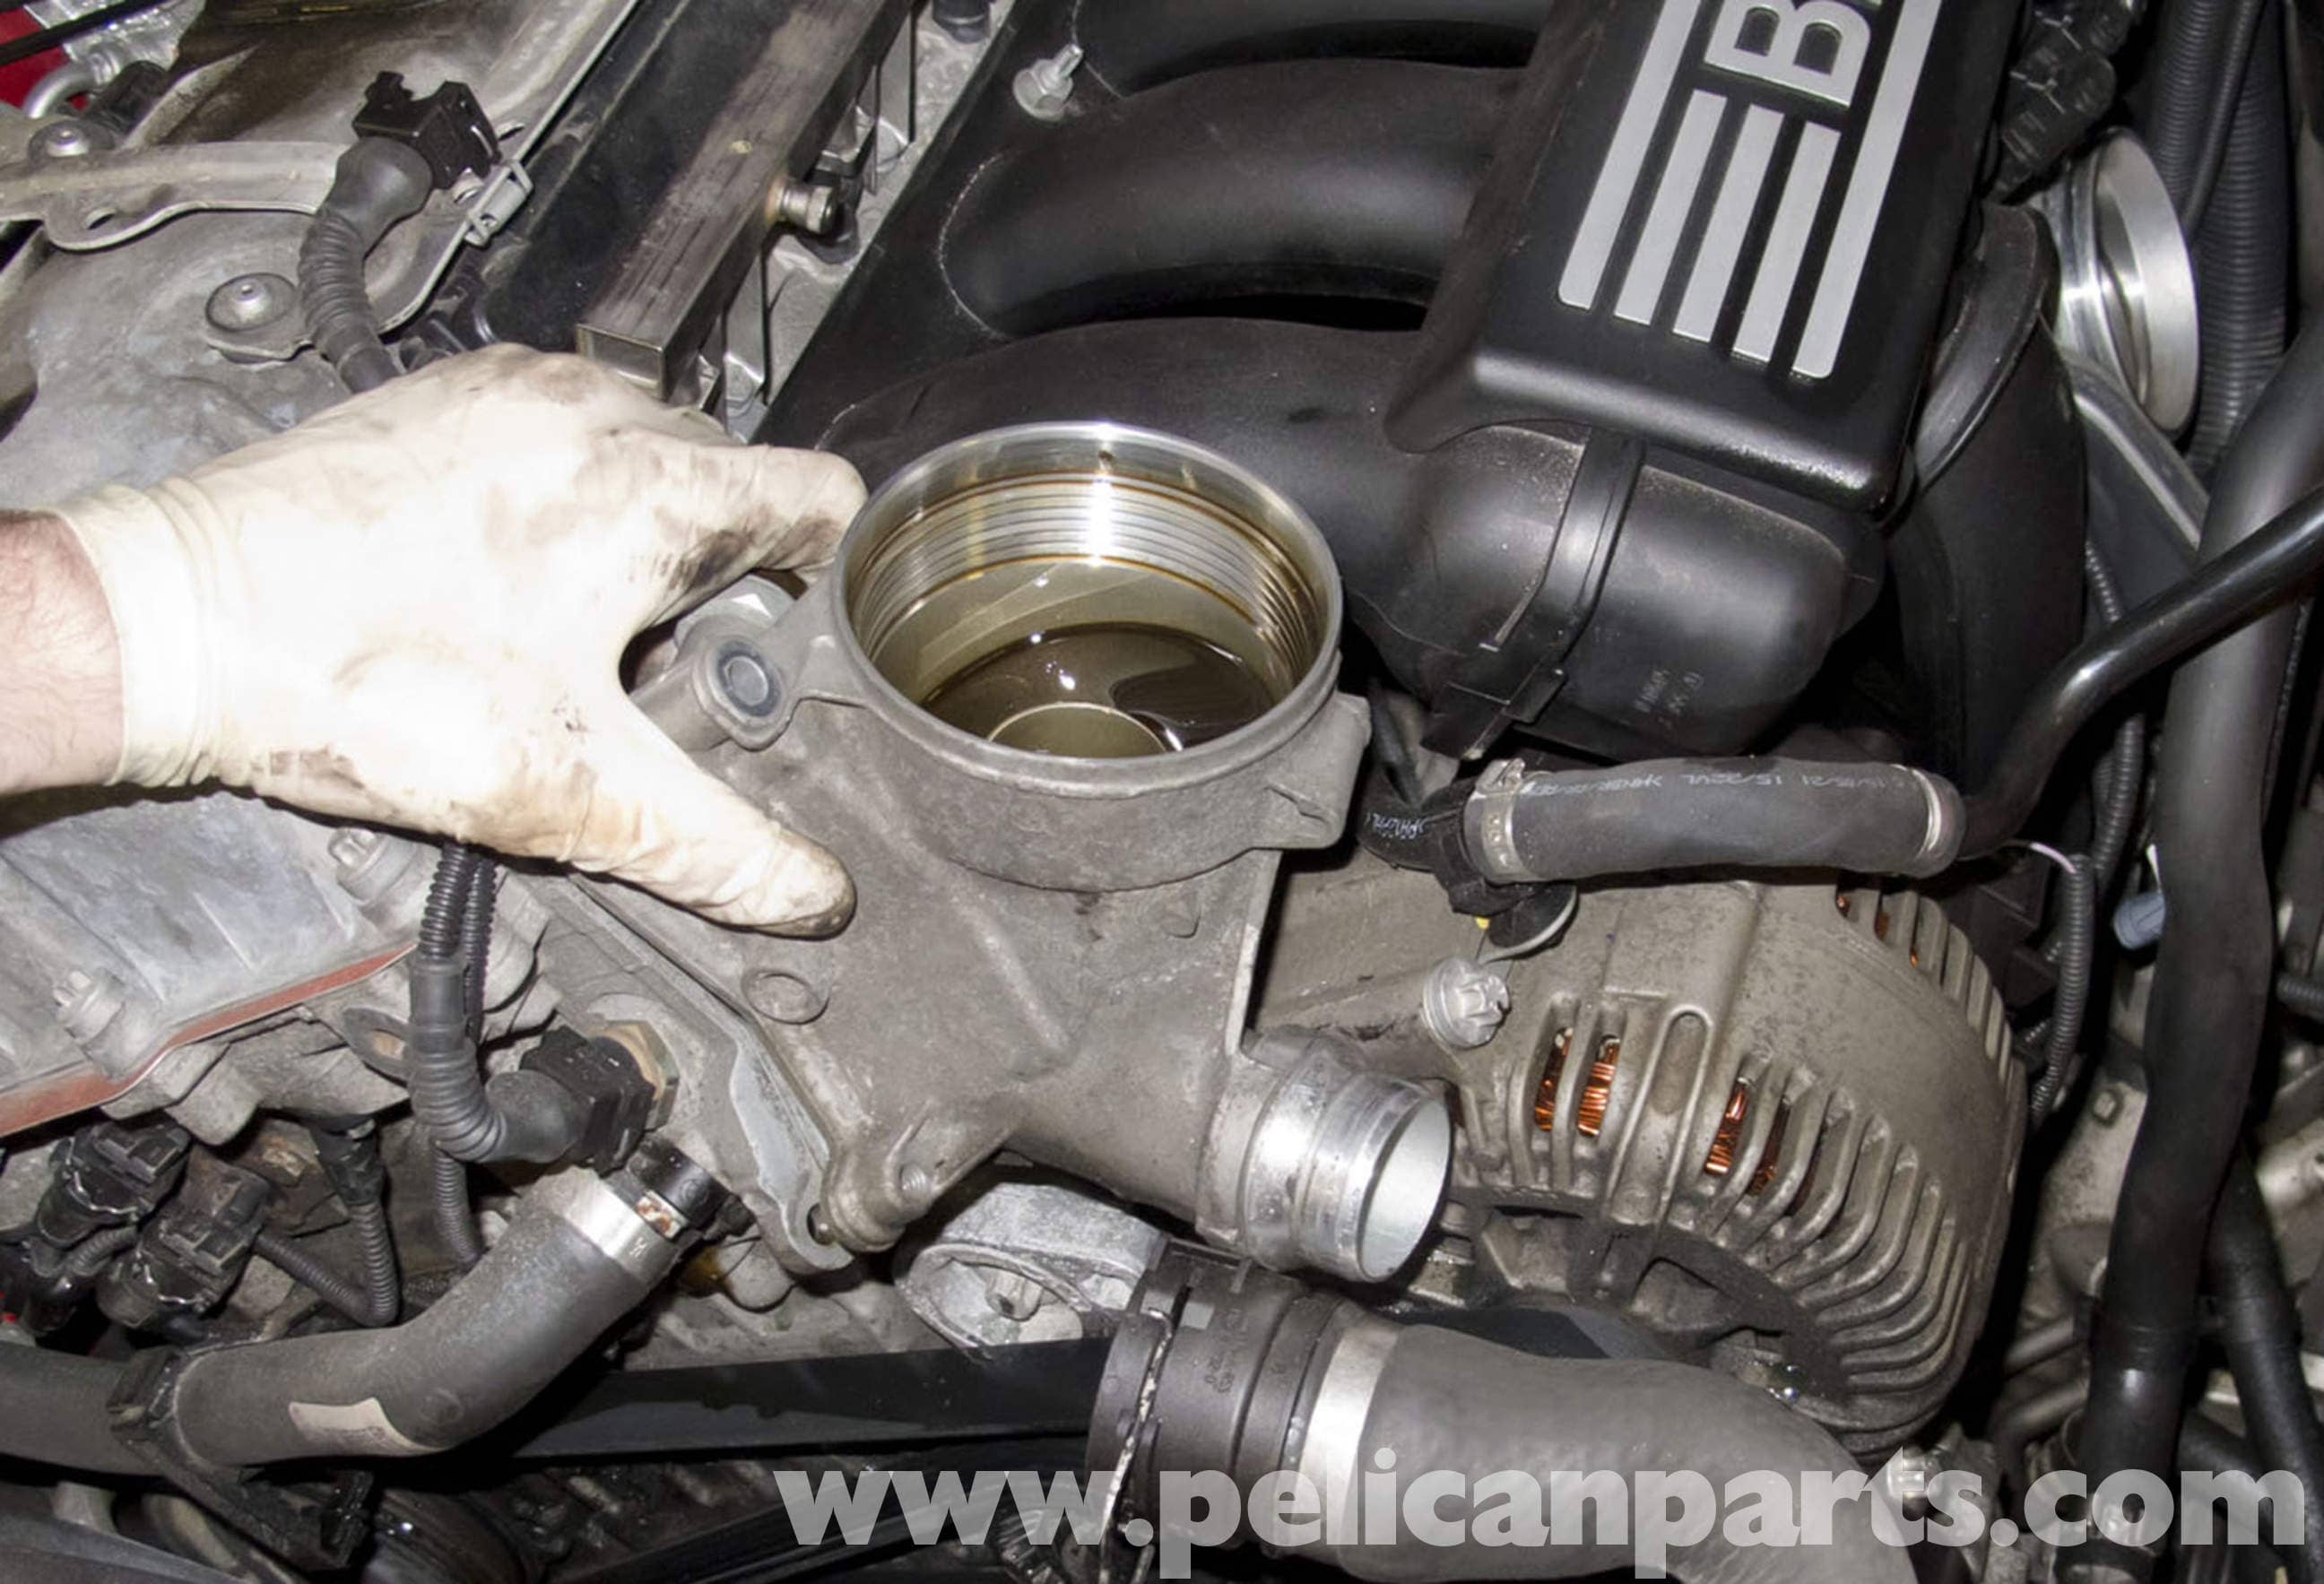 Oil Filter Housing Gasket >> Pelican Parts Technical Article - BMW-X3 - N52 Engine Oil Filter Housing Gasket Replacement